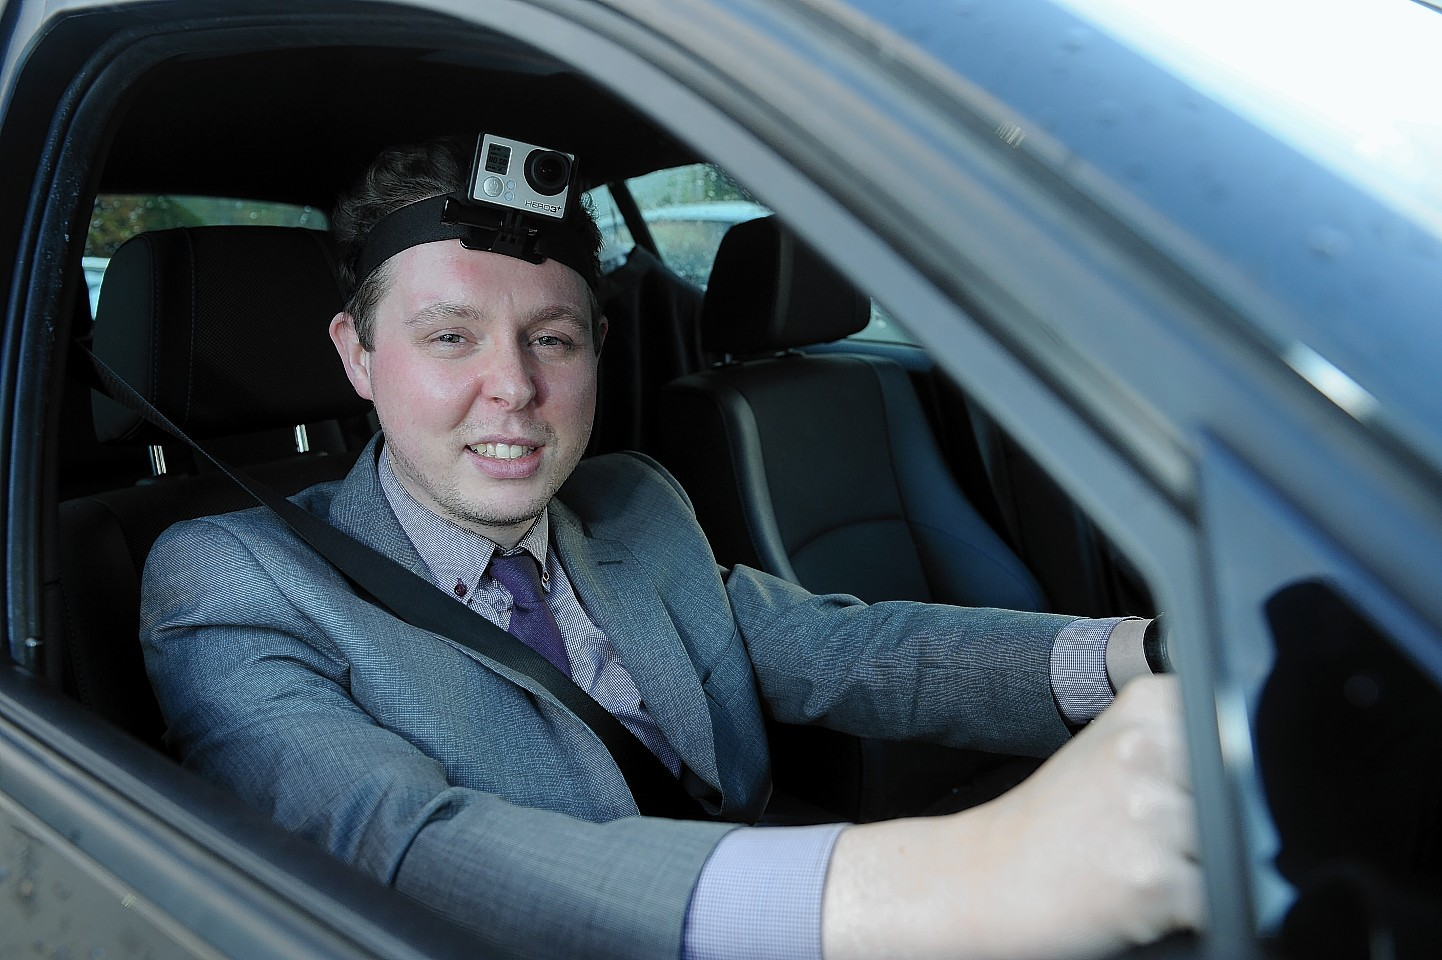 Martin Little dons a head-mounted camera to film the progress of his journey on the A9 yesterday